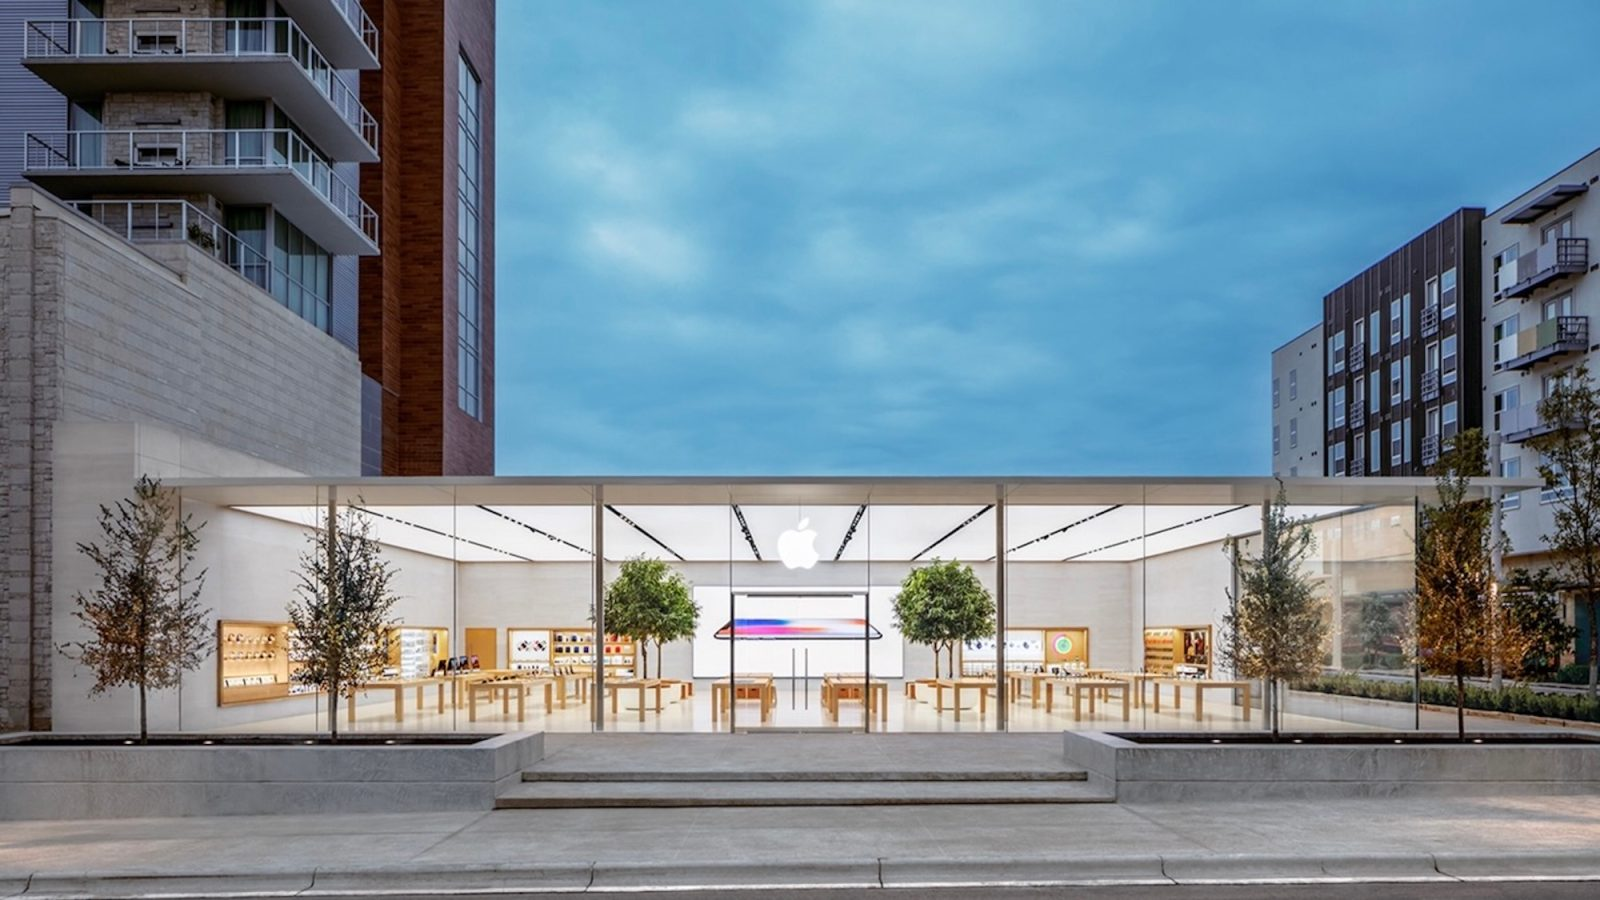 Bloomberg: U.S. Apple Stores will no longer require face masks starting this week